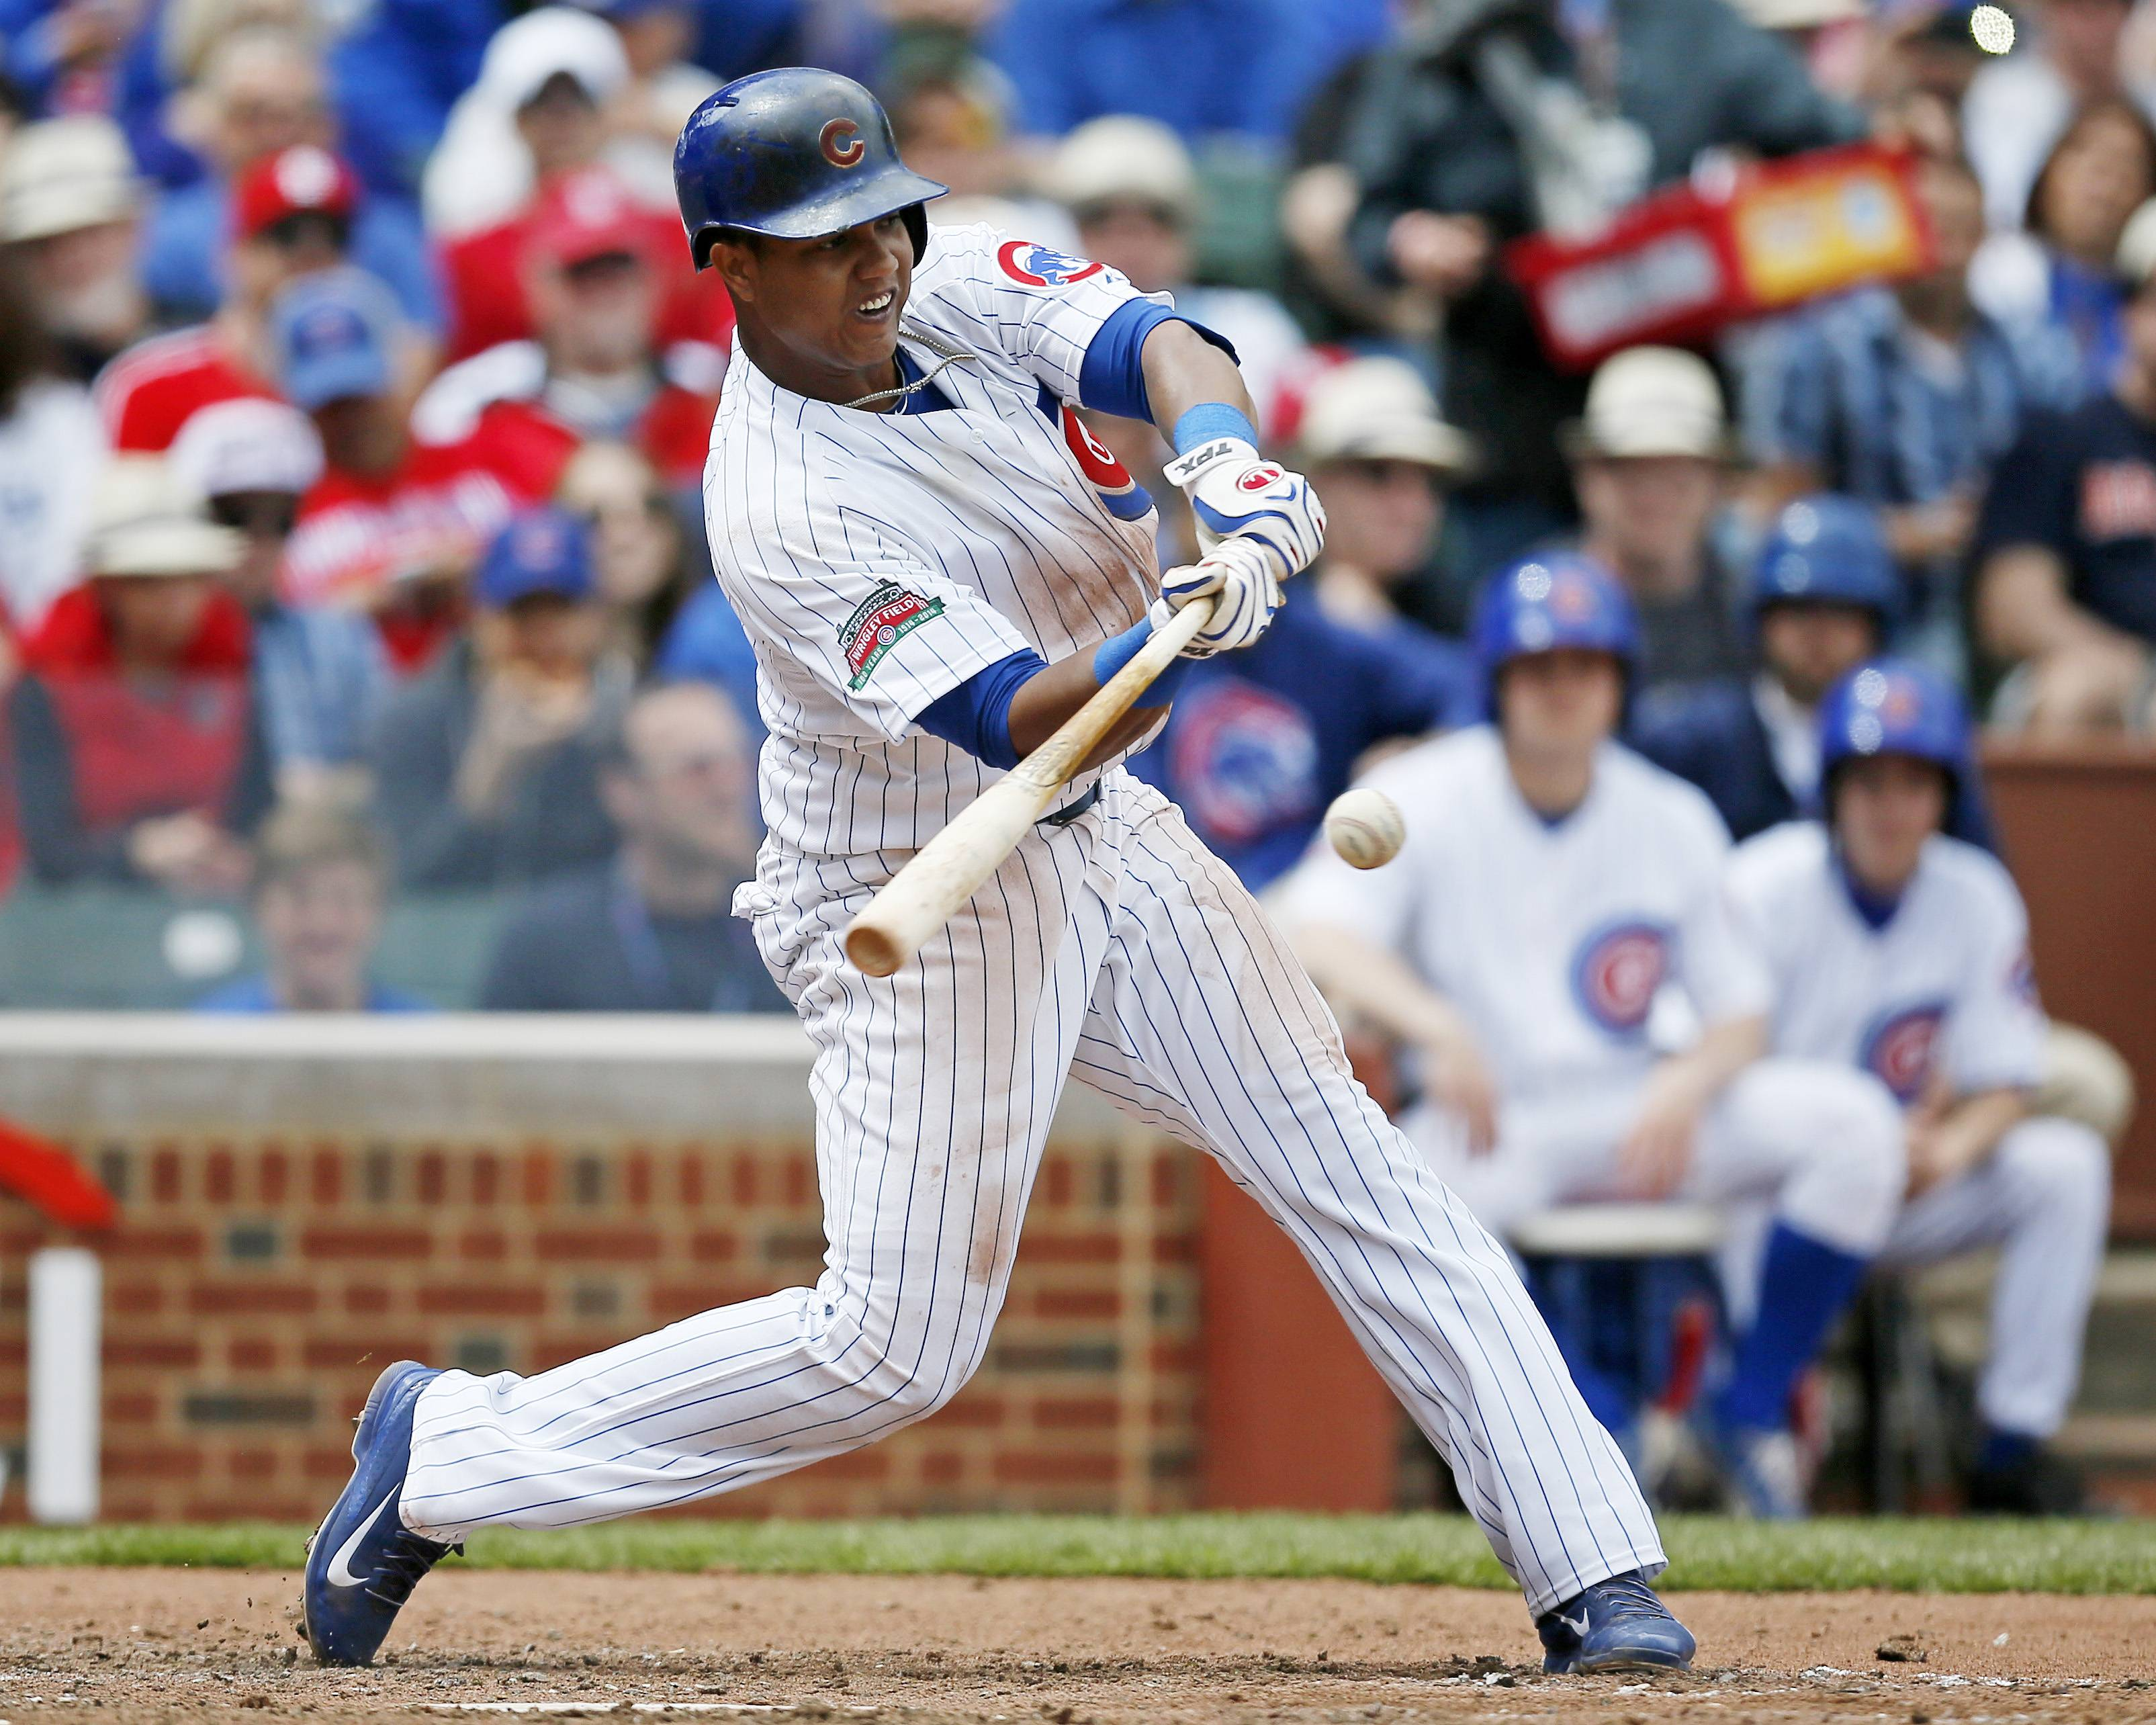 Cubs' Starlin Castro connects for a single against the St. Louis Cardinals during the sixth inning of a baseball game on Saturday, May 3, 2014, in Chicago.